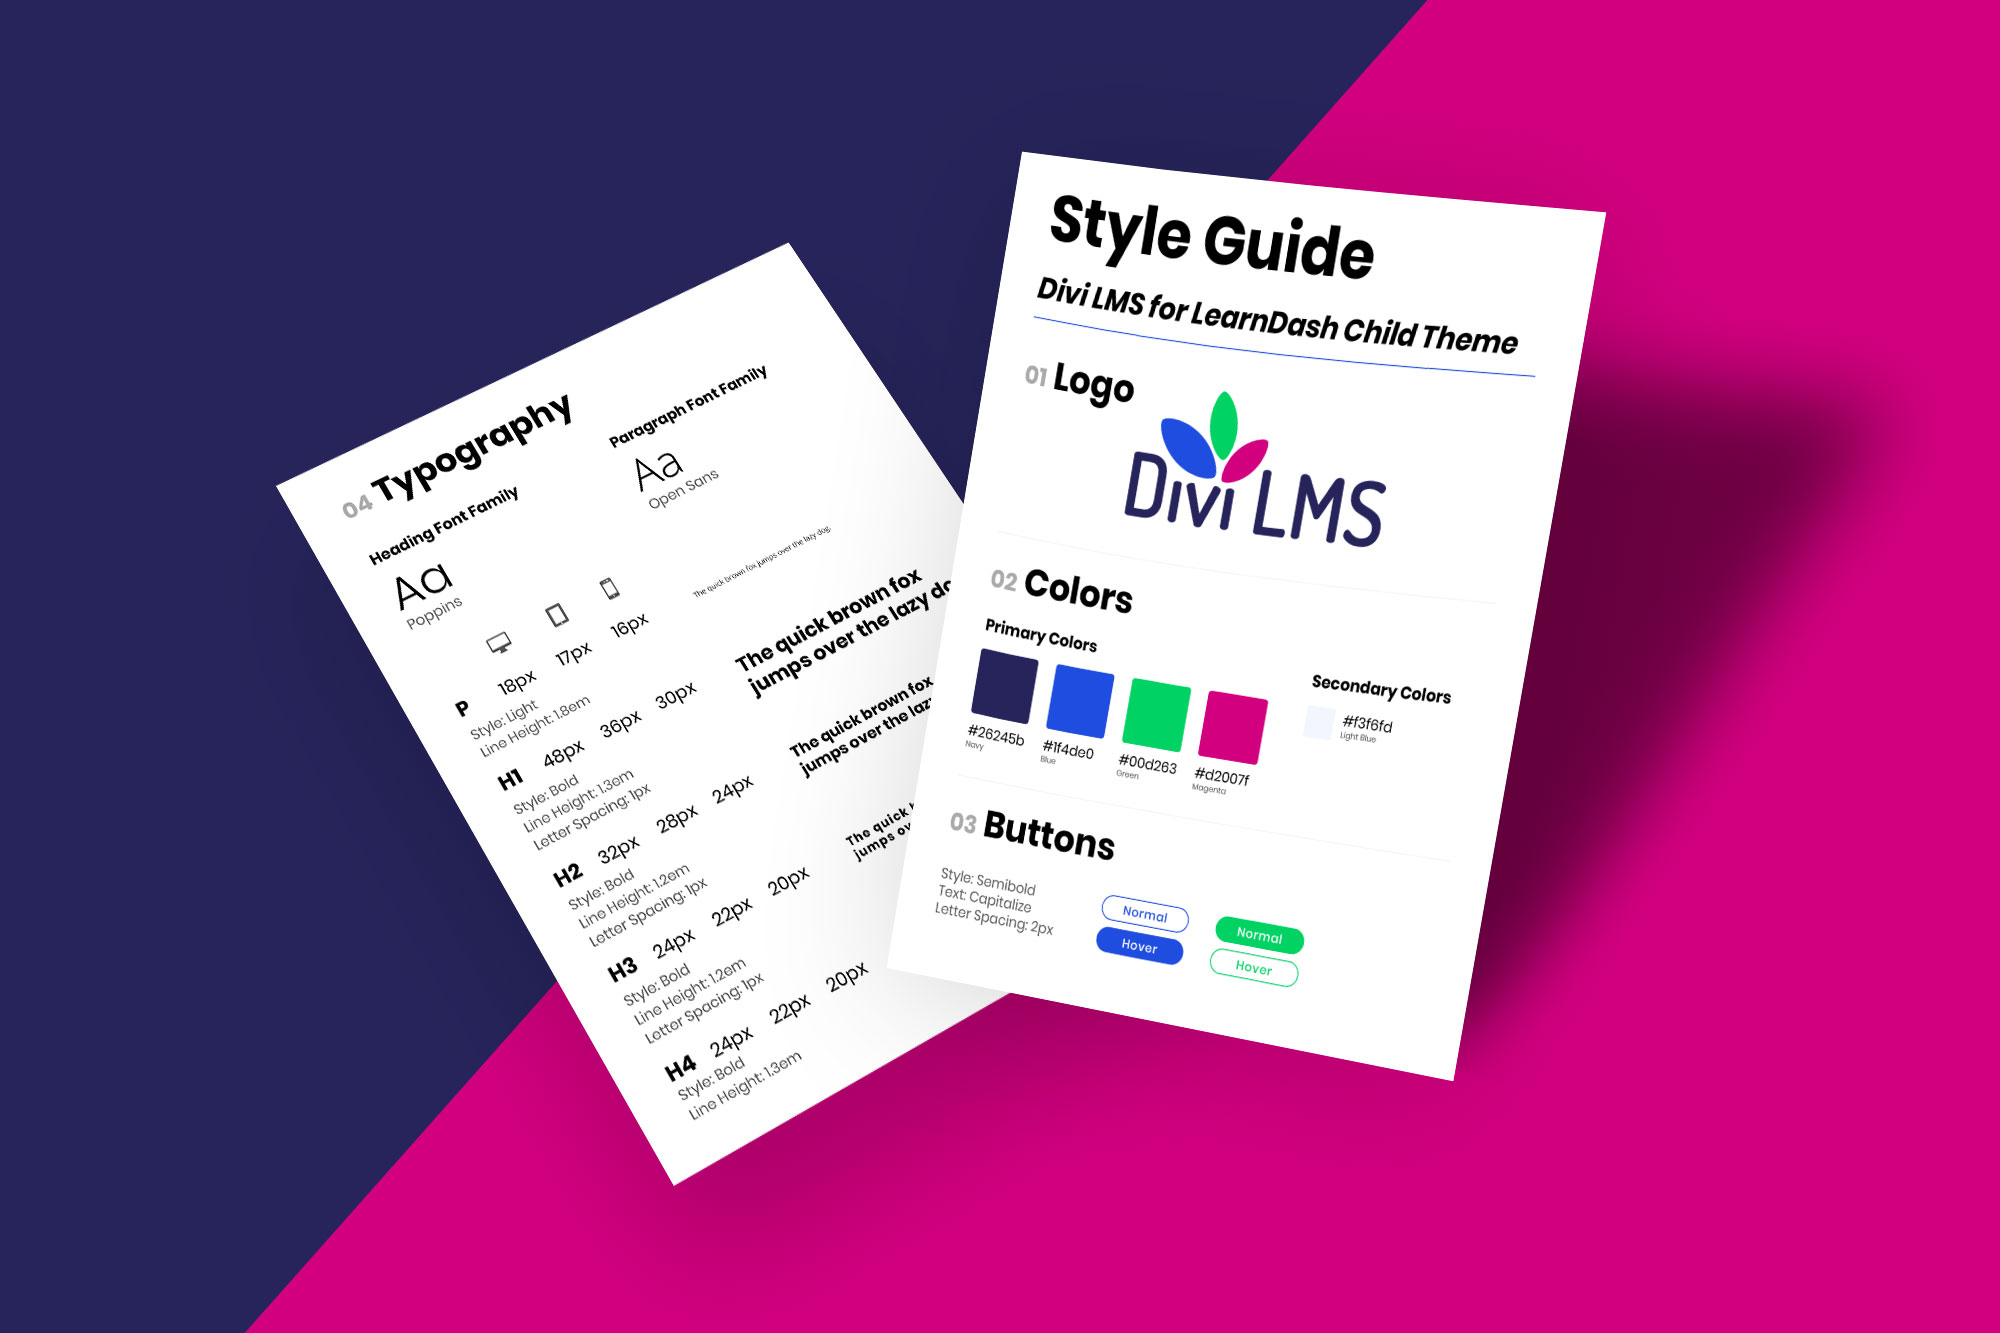 Divi LMS for LearnDash Child Theme Style Guide Mockup